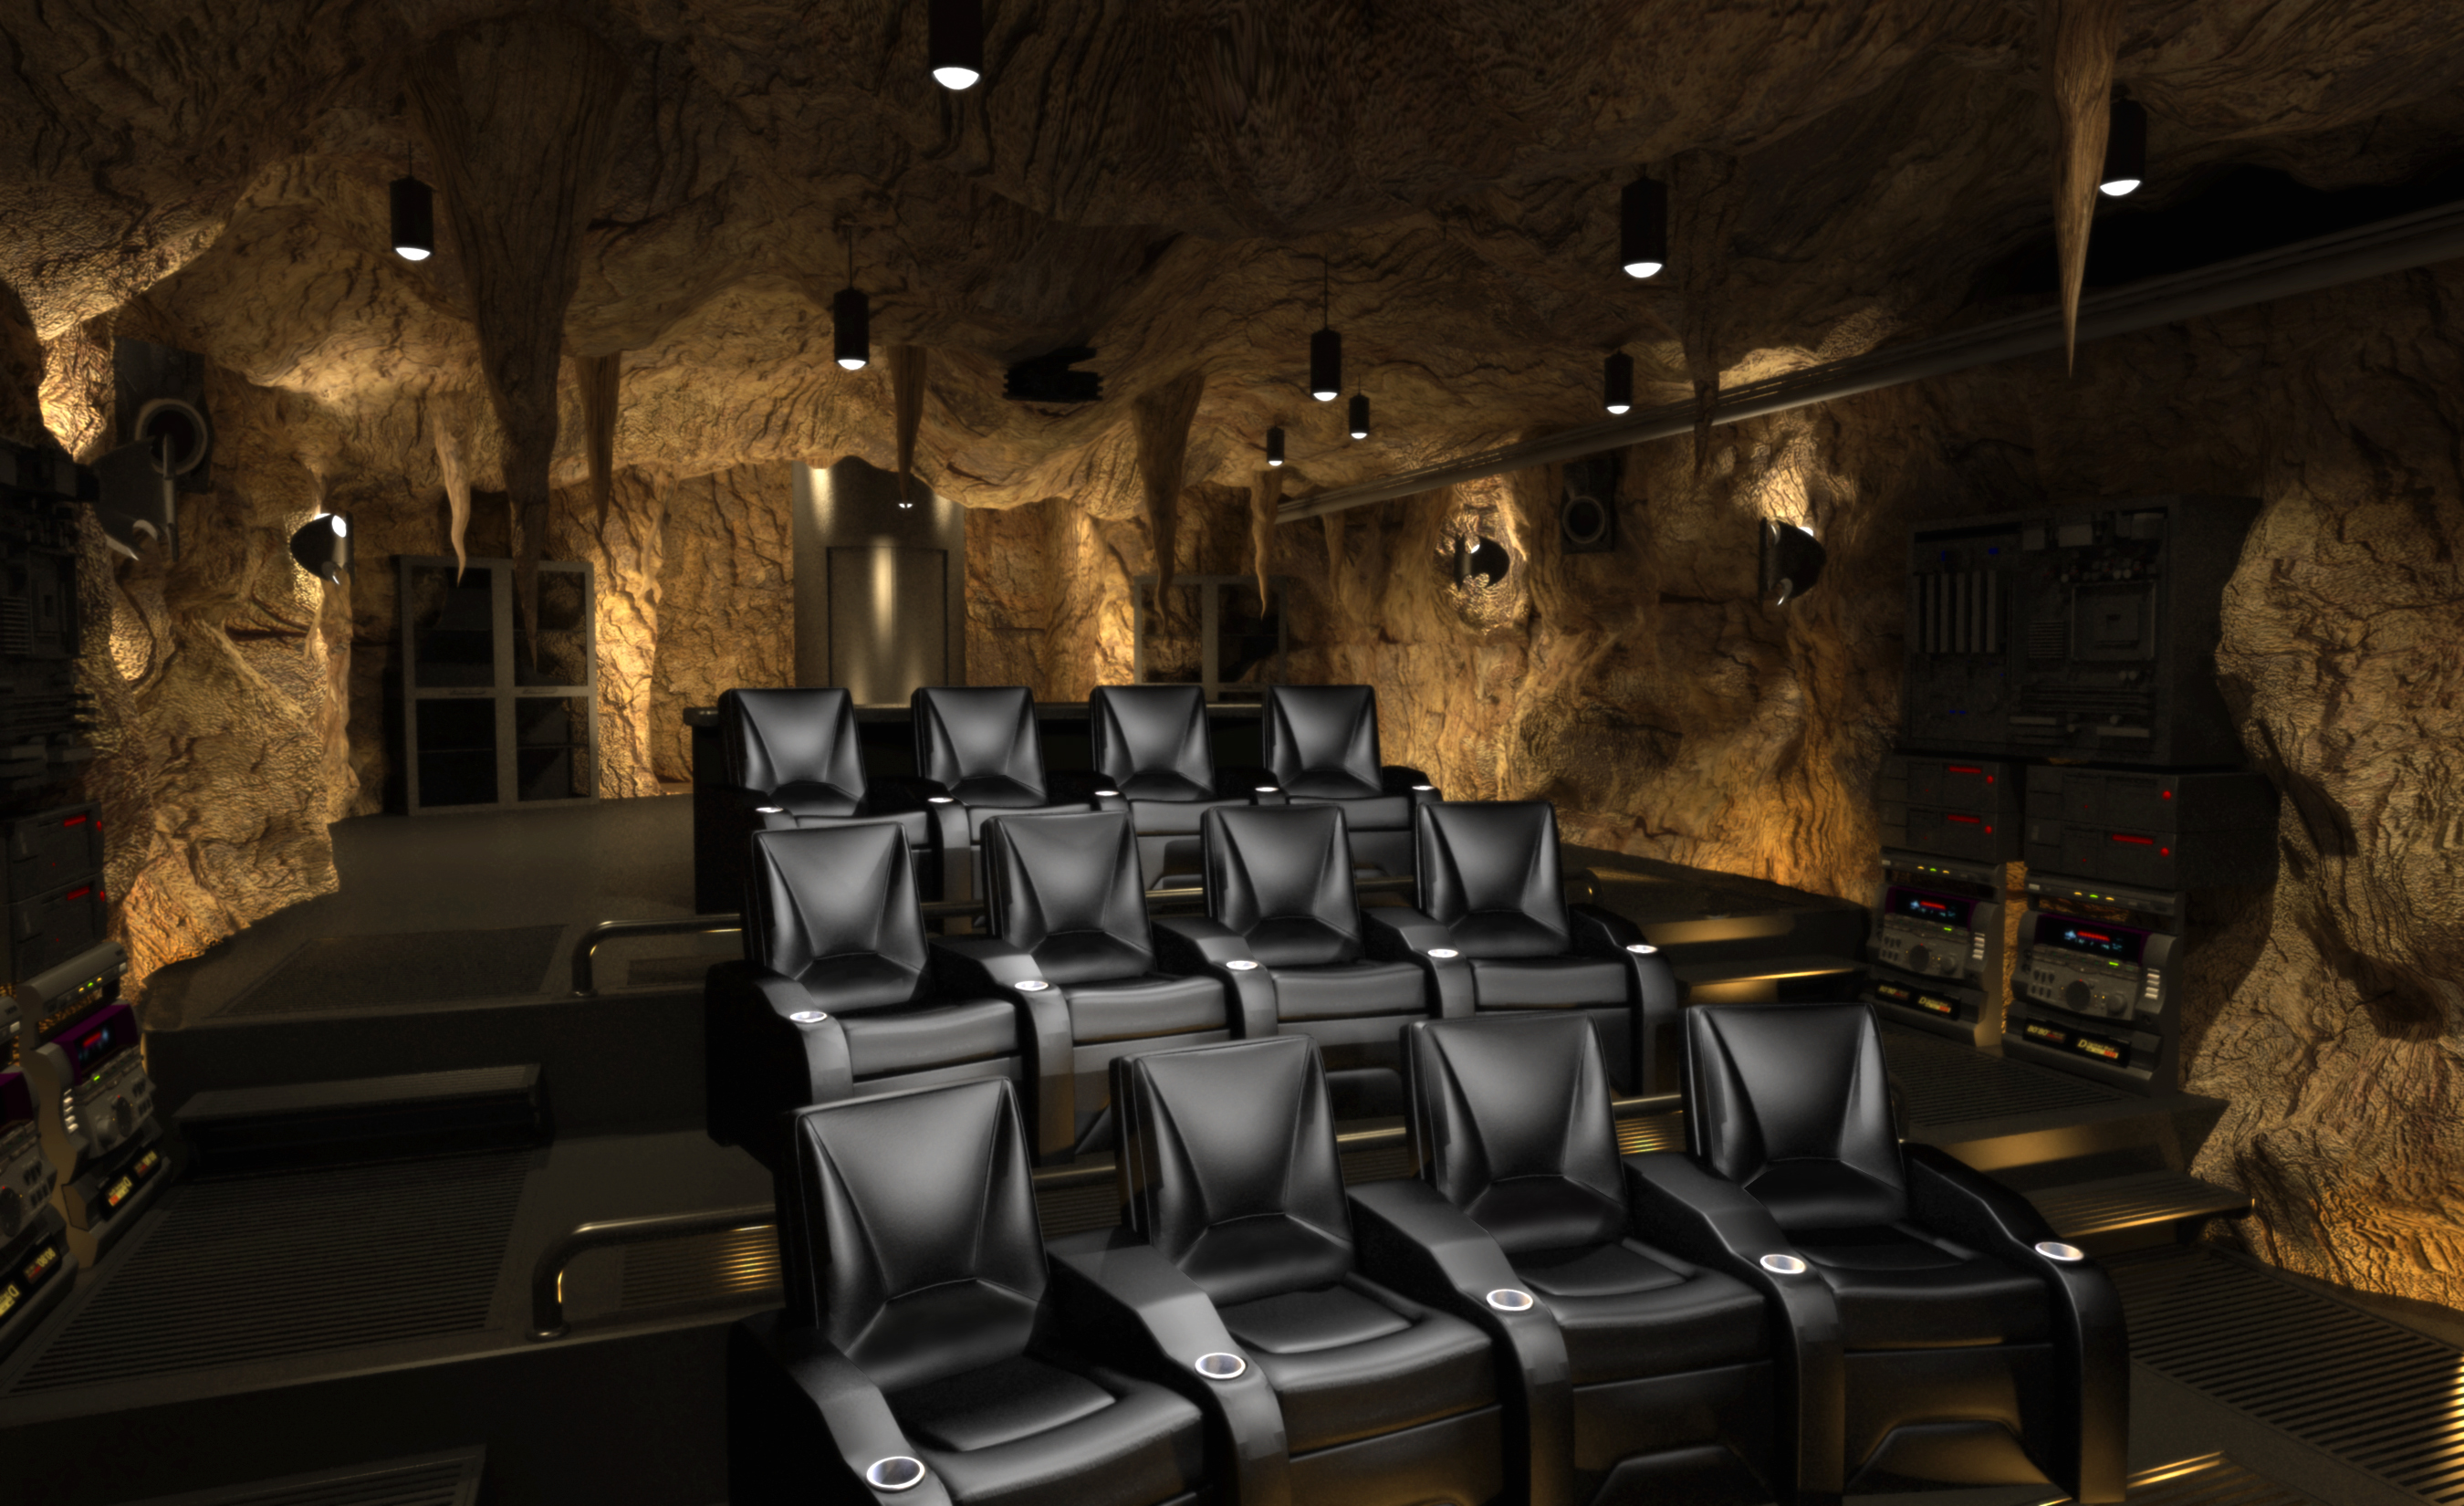 Superieur Original Batcave Theater Concept